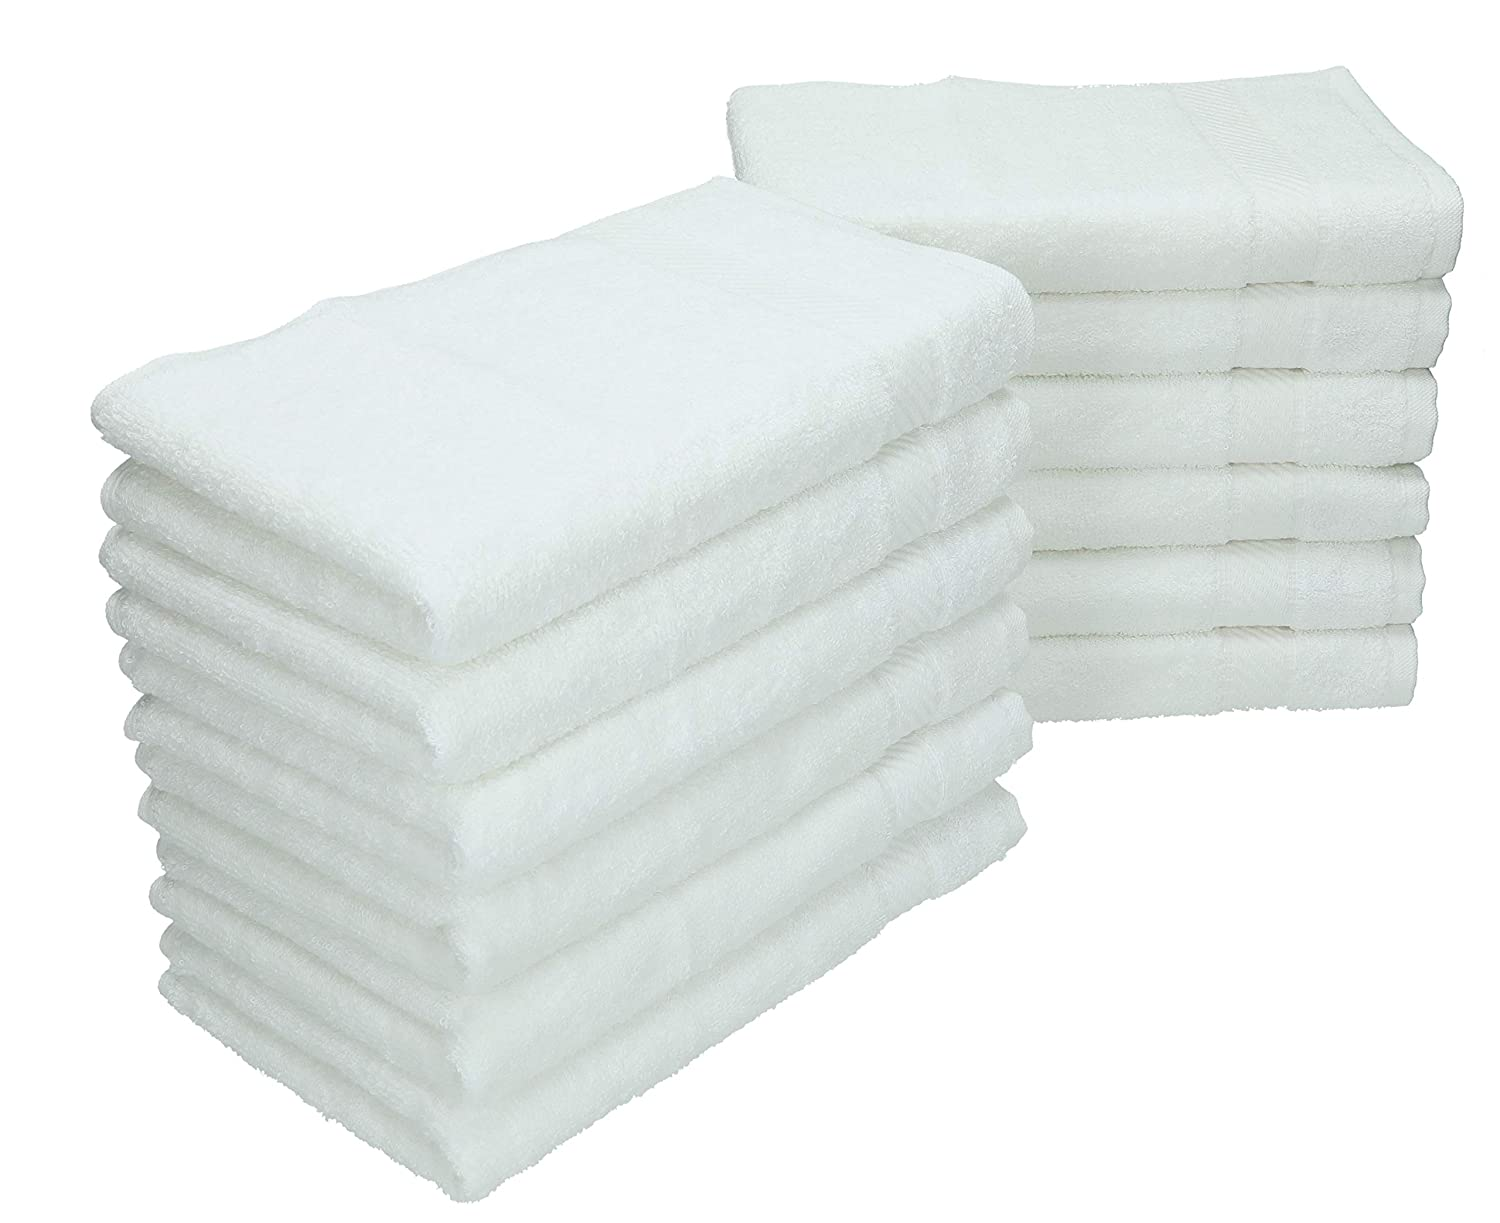 Betz Pack of 12 Guest Towels PALERMO 30x50 cm 100% Cotton (white)